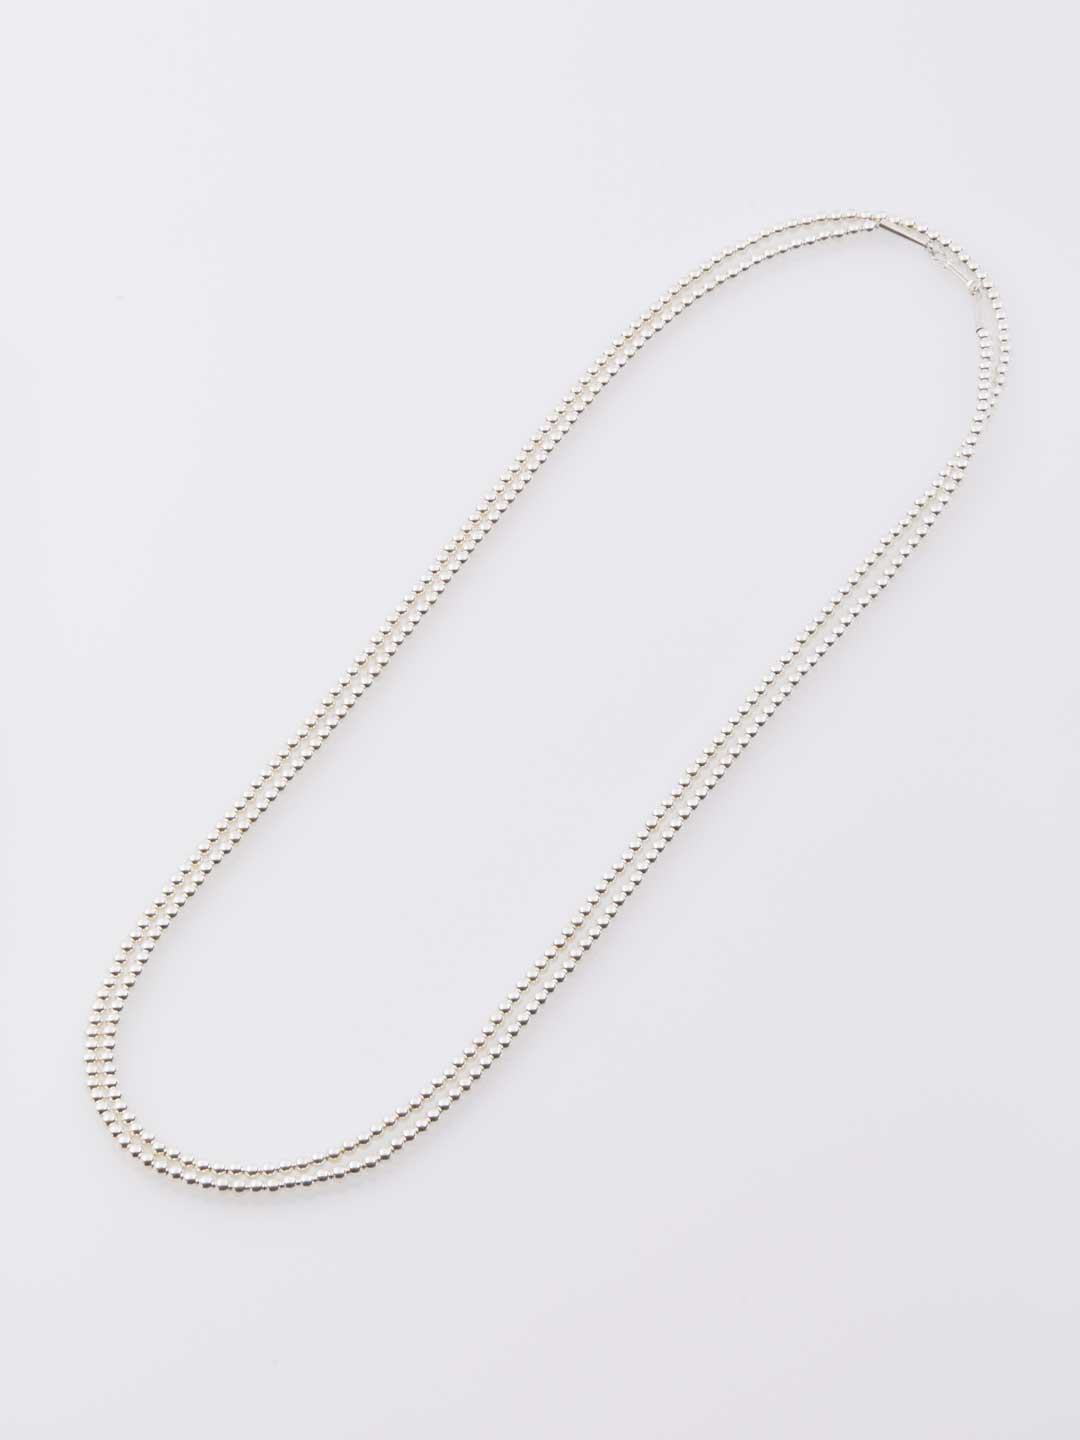 4mm Ball Chain Necklace 150cm  - Silver